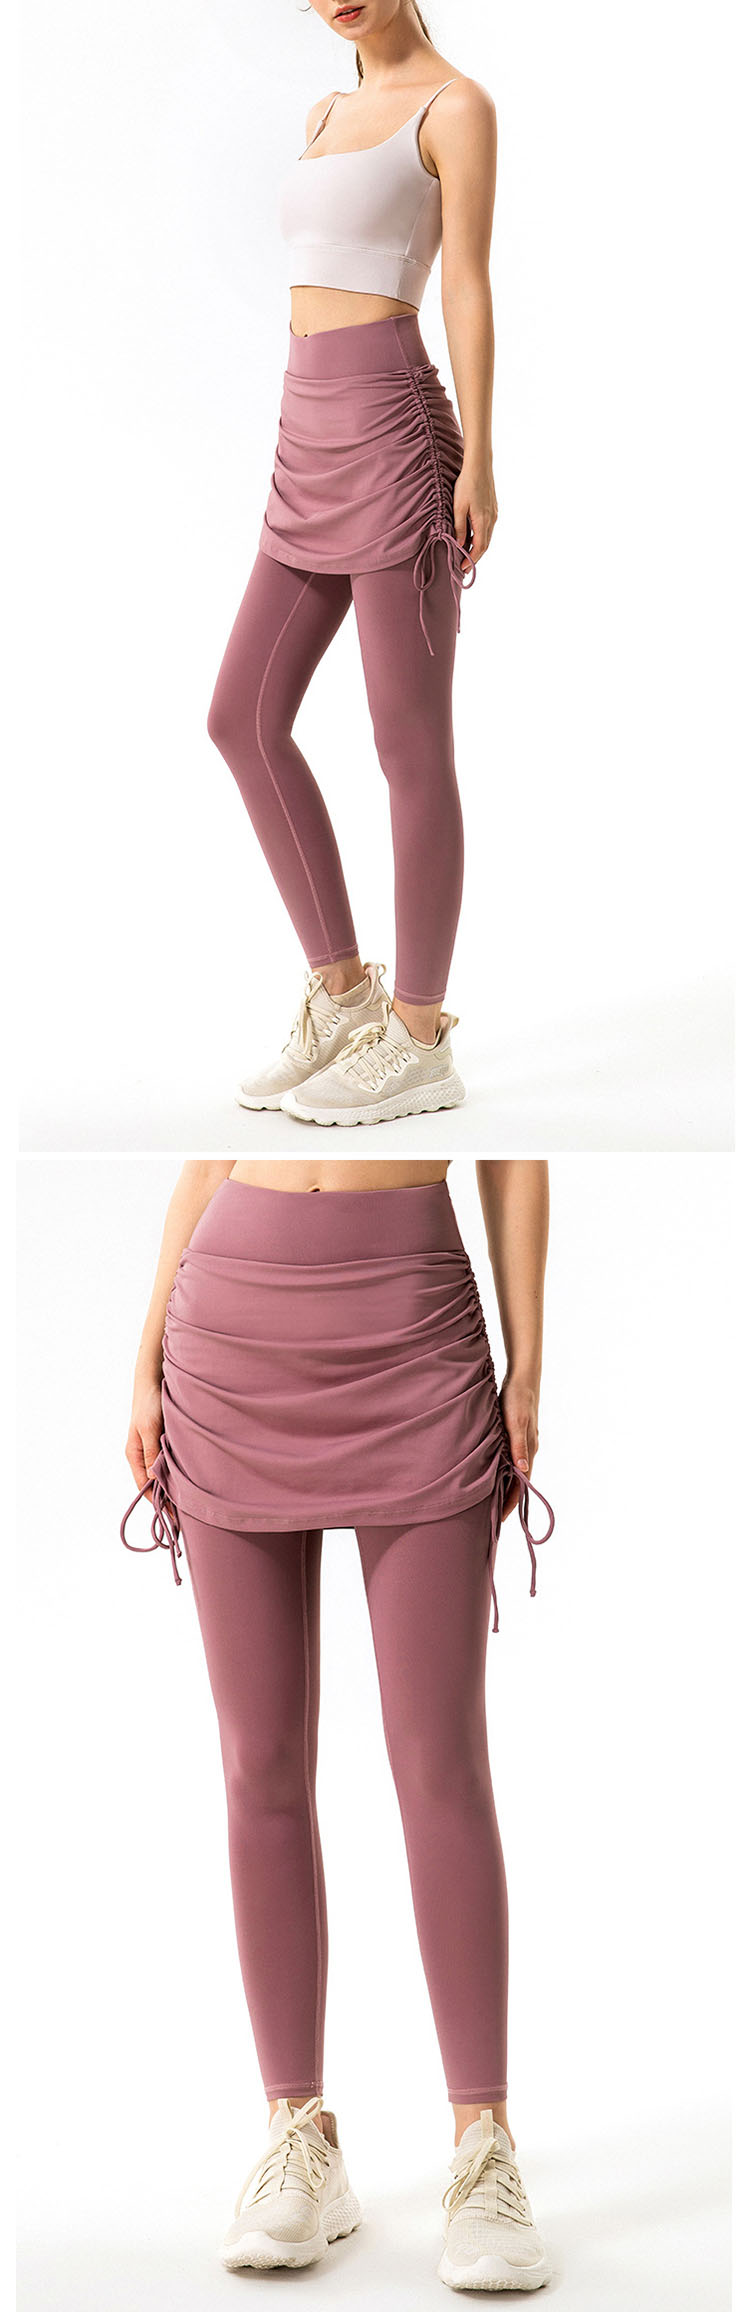 The side drawstring can adjust the tightness at any time.